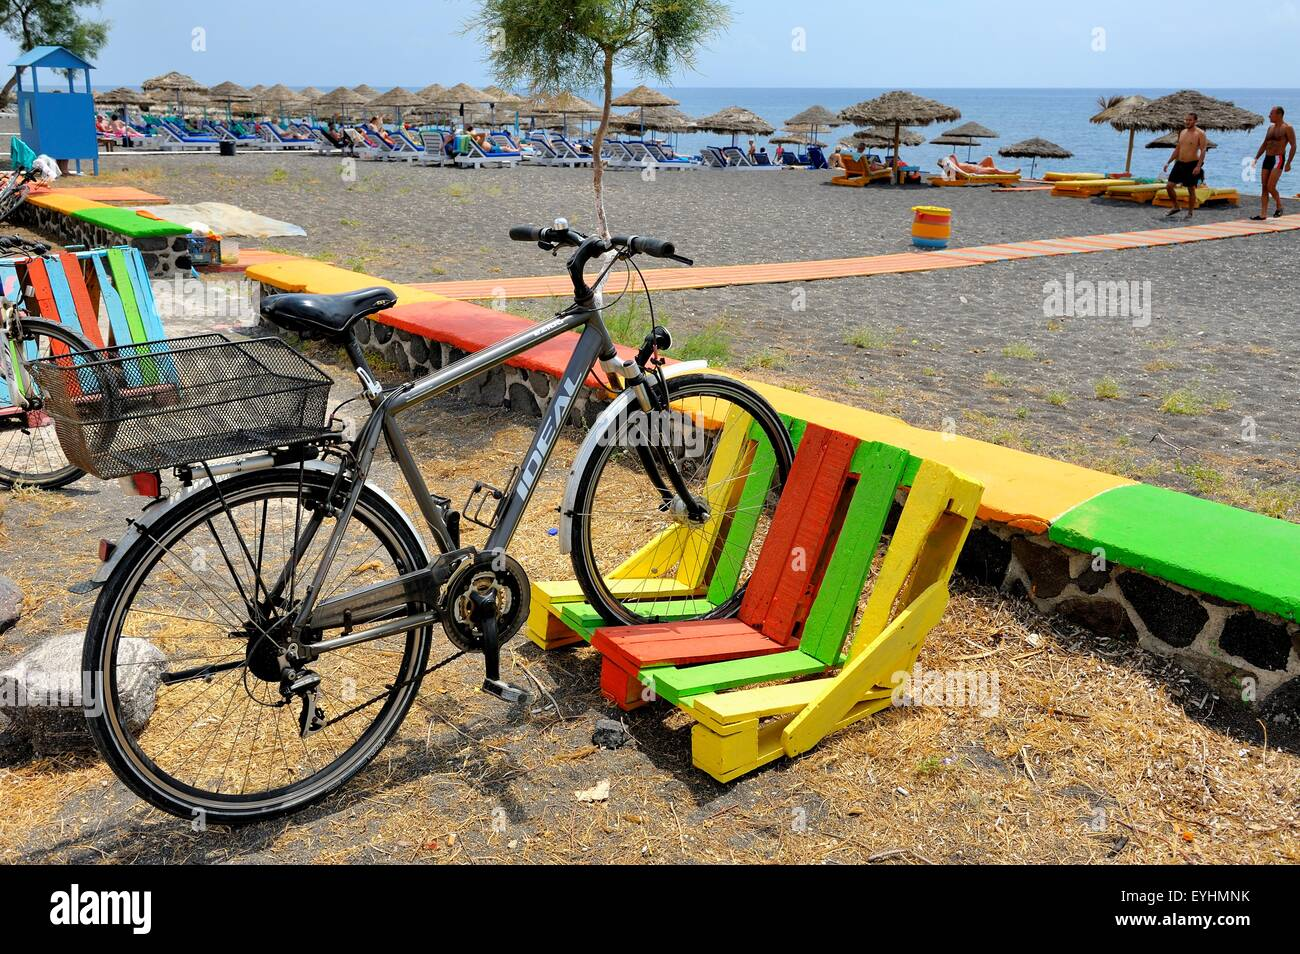 A Colorful Bike Rack Made Out Of A Wooden Pallet On Perissa Beach